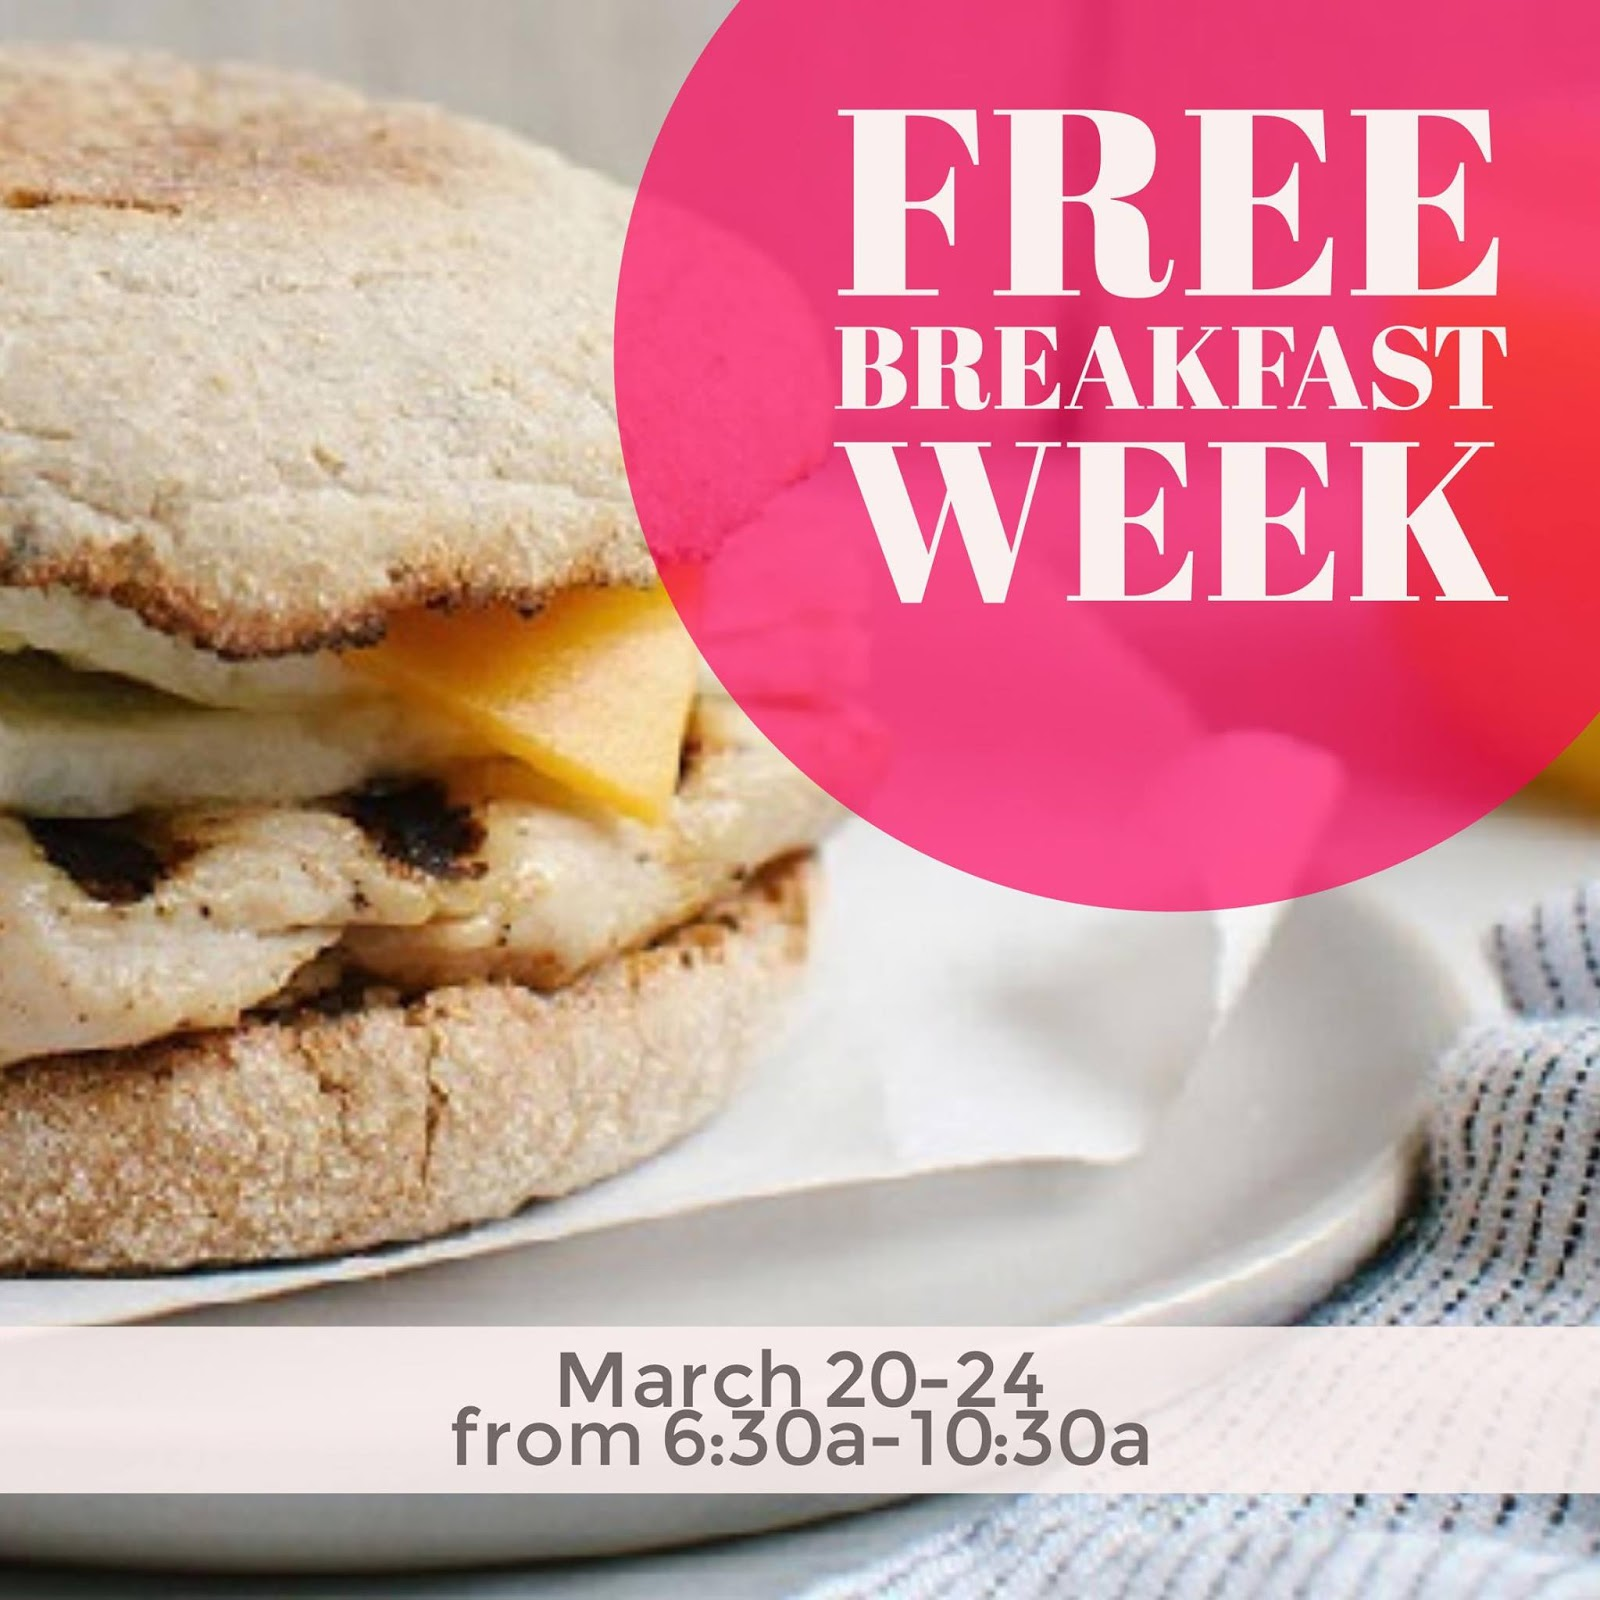 March 20 - 24 | Stop By Chick-fil-A for Free Breakfast in Los Angeles